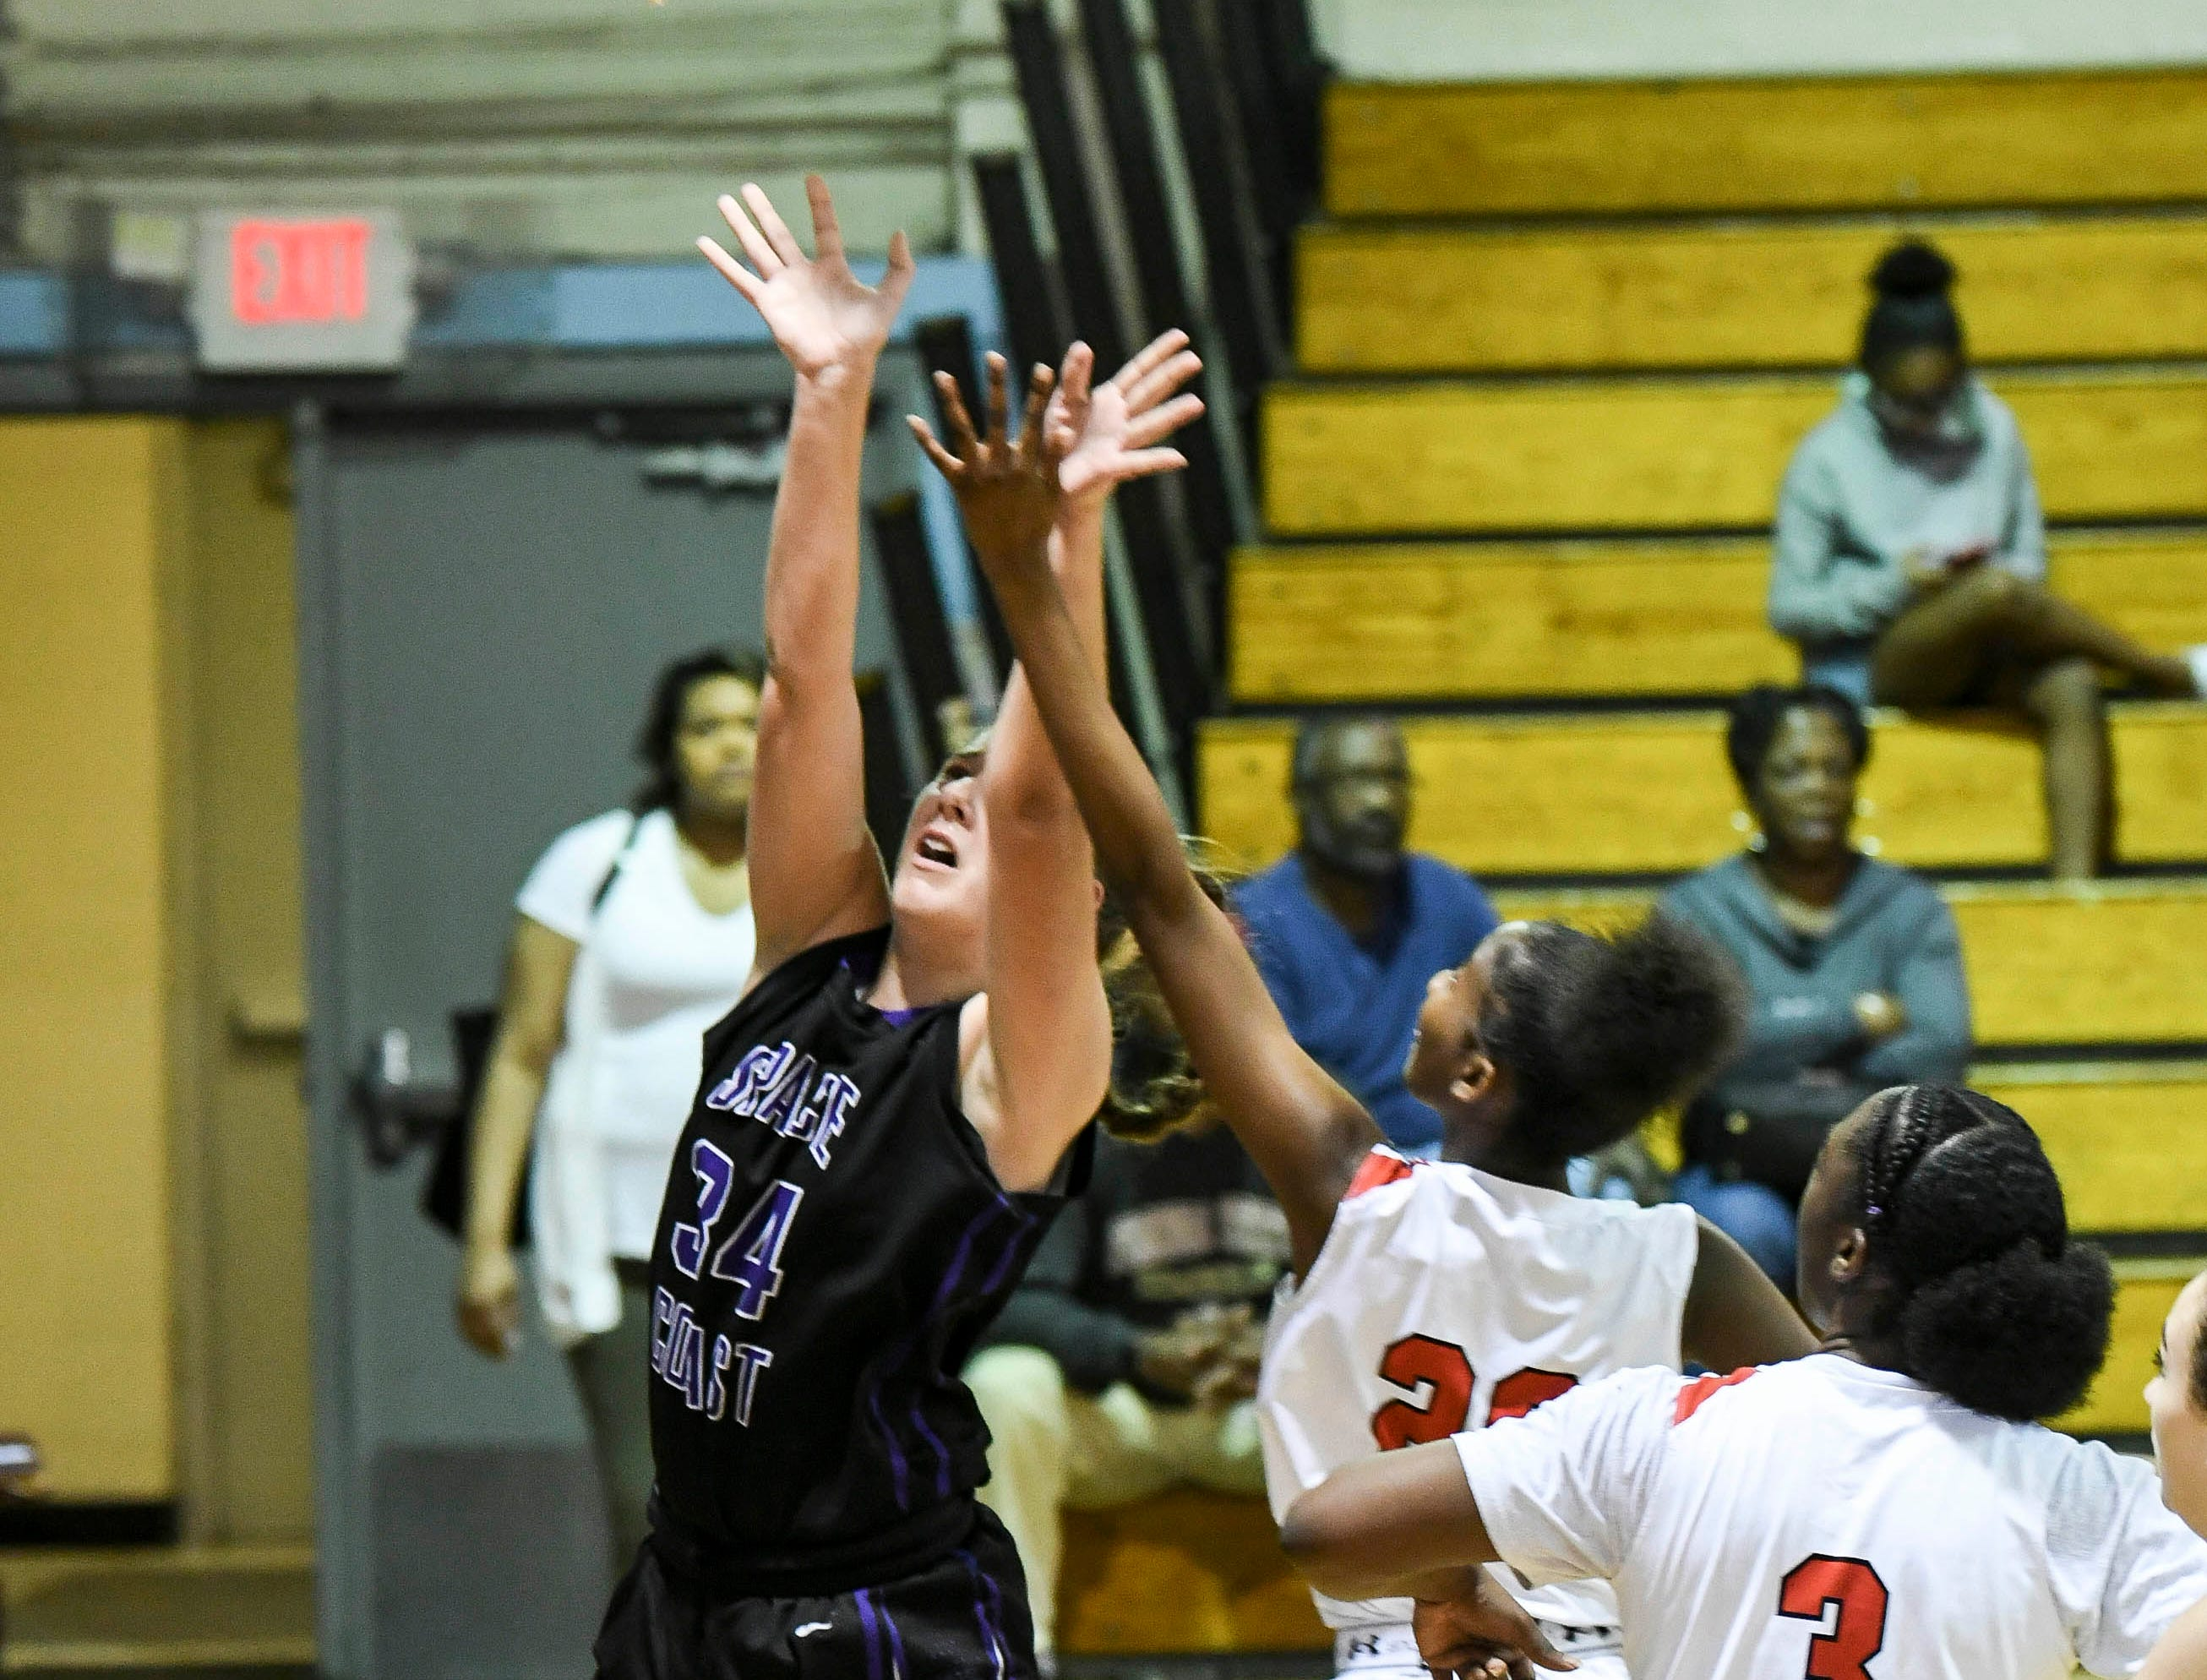 Danelle Marie of Space Coast takes a shot during Thursday's District 14-6A basketball tournament at Rockledge High School.